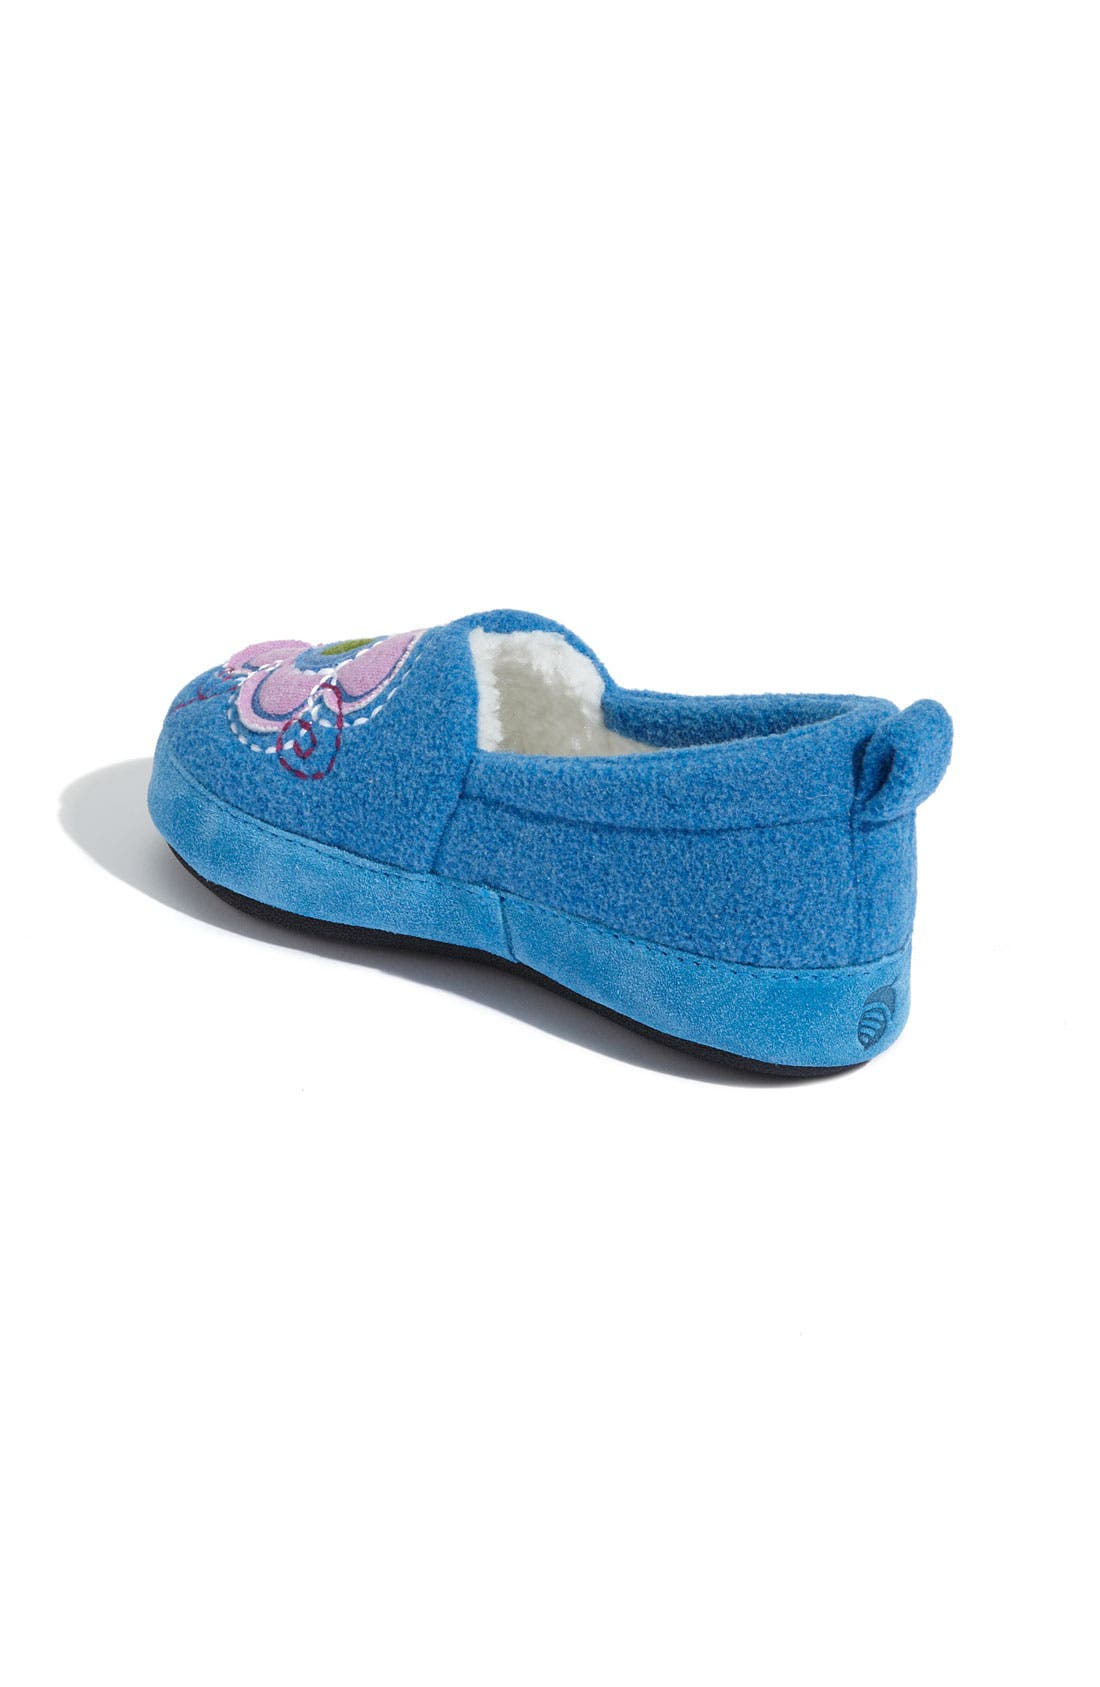 Alternate Image 2  - Acorn 'Flower Power Moc' Slipper (Toddler, Little Kid & Big Kid)